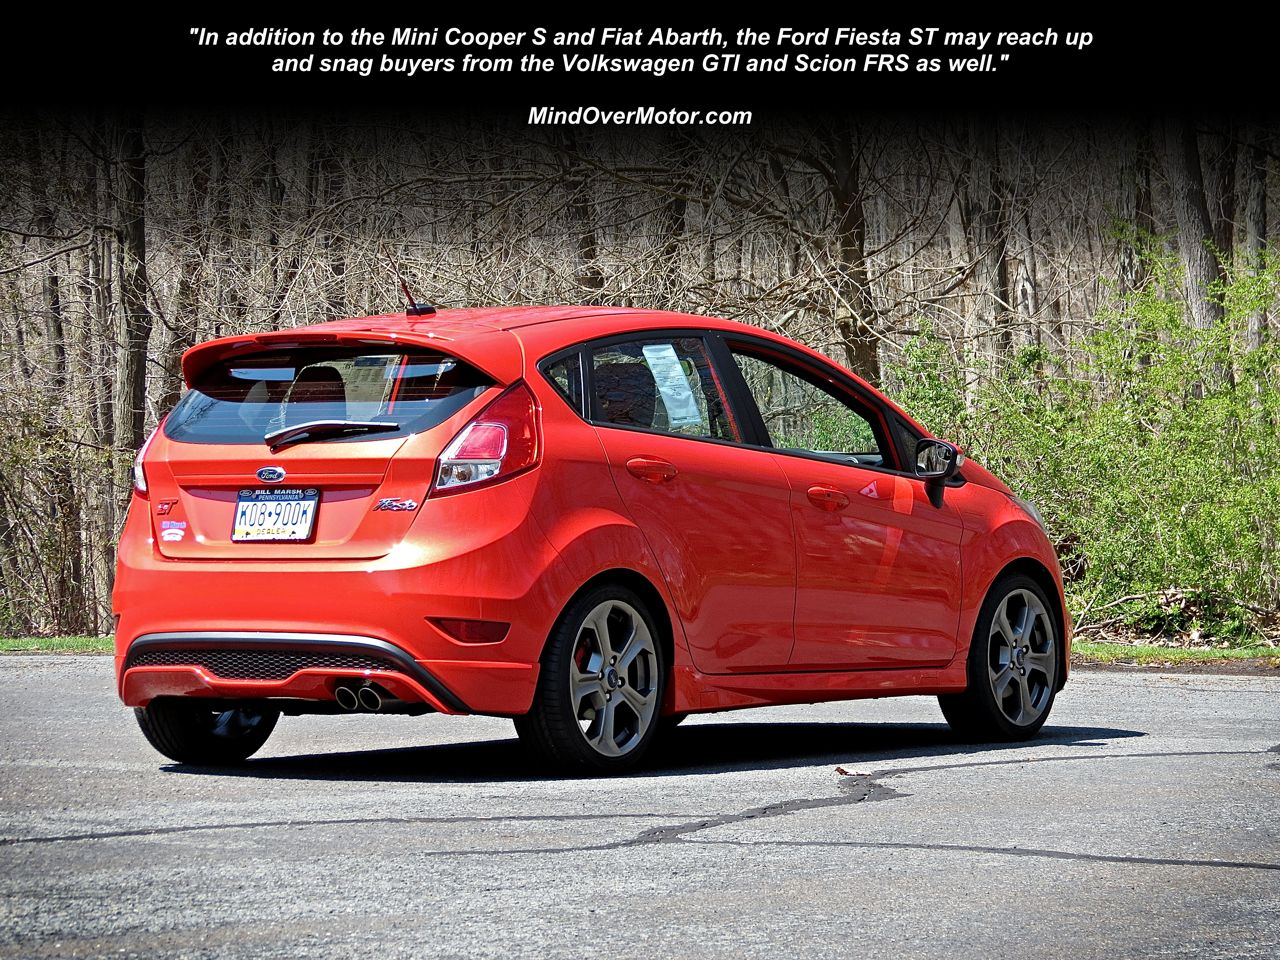 Ford Fiesta ST rear quarter view